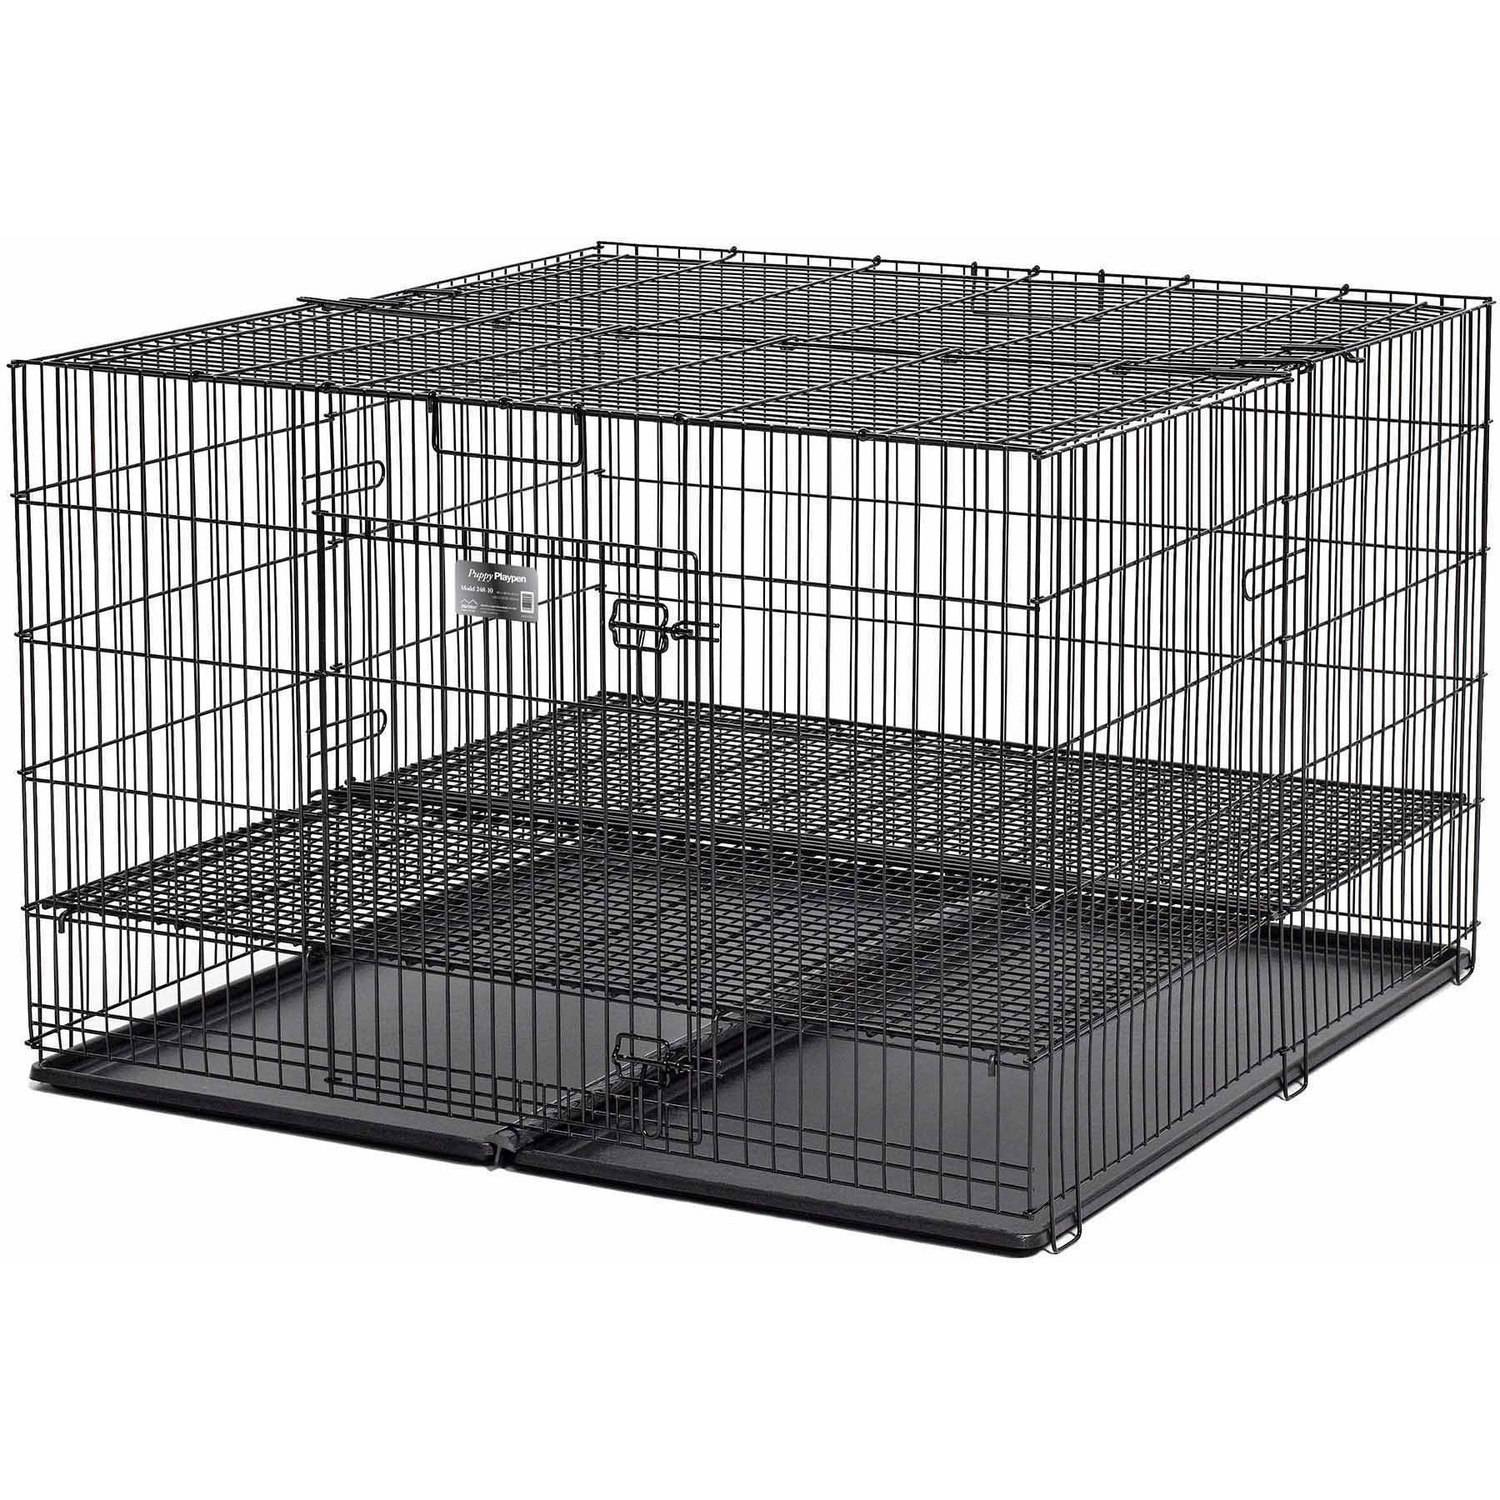 "Midwest Puppy Playpen with Plastic Pans and 1/2"" Floor Grid"